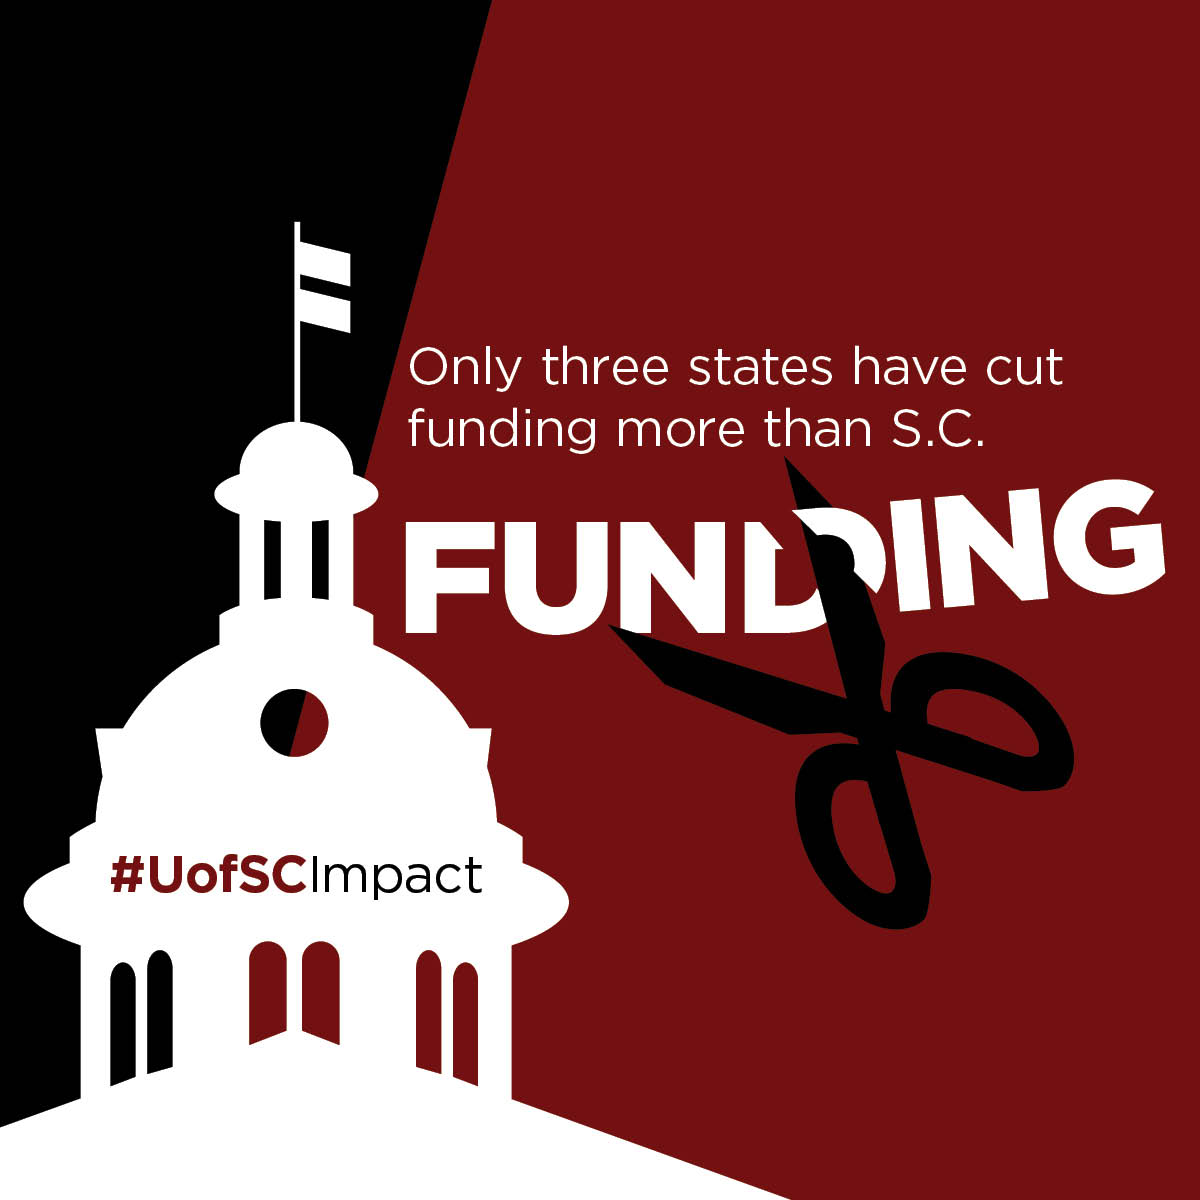 Only 3 other states have cut funding more than SC #UofSCImpact